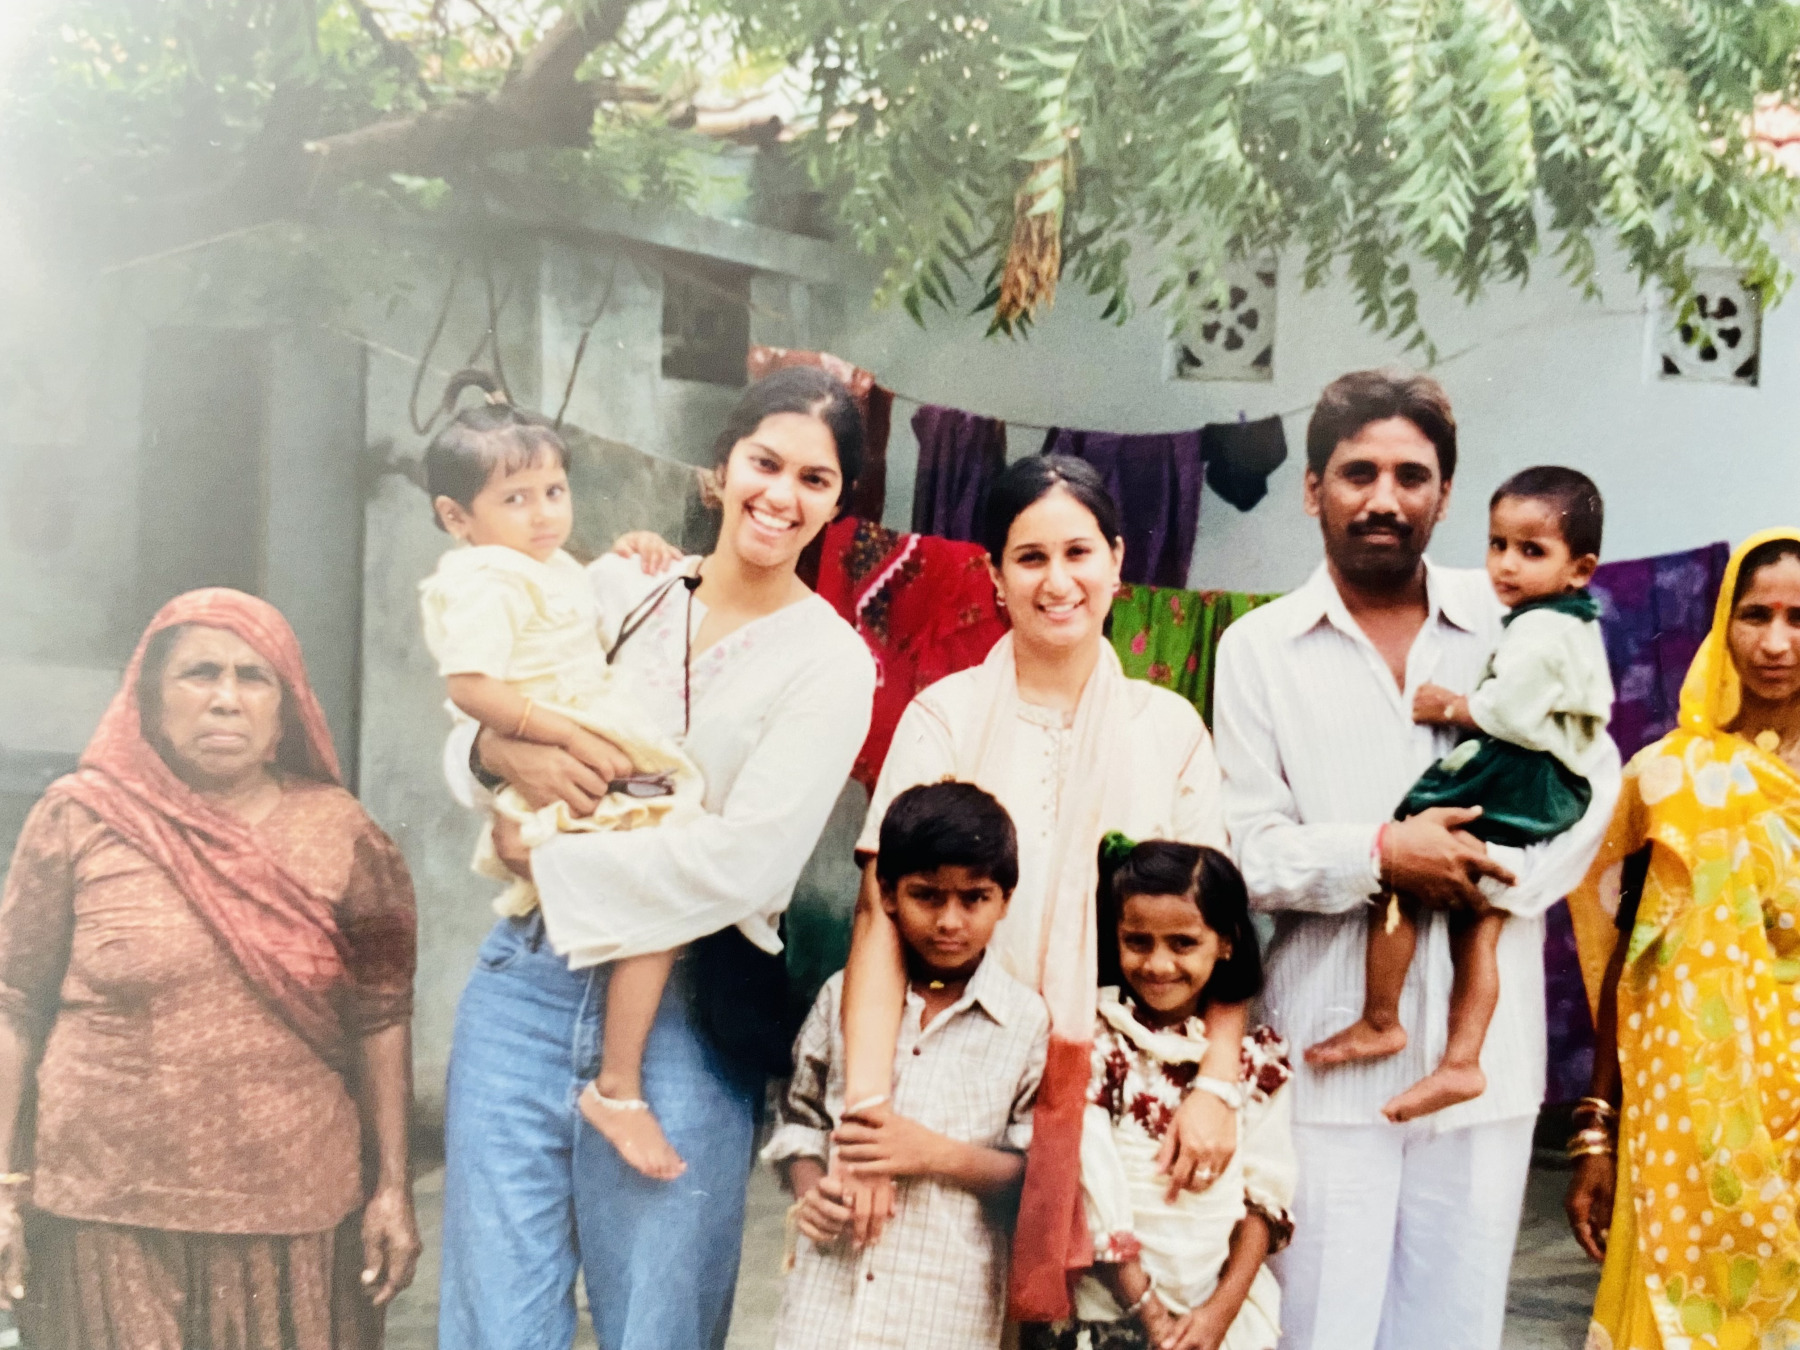 Tanvi holding a young girl in her arms, standing next to Meenakshi, who embraces two children, and left and right of them, adult members of the family with another child.